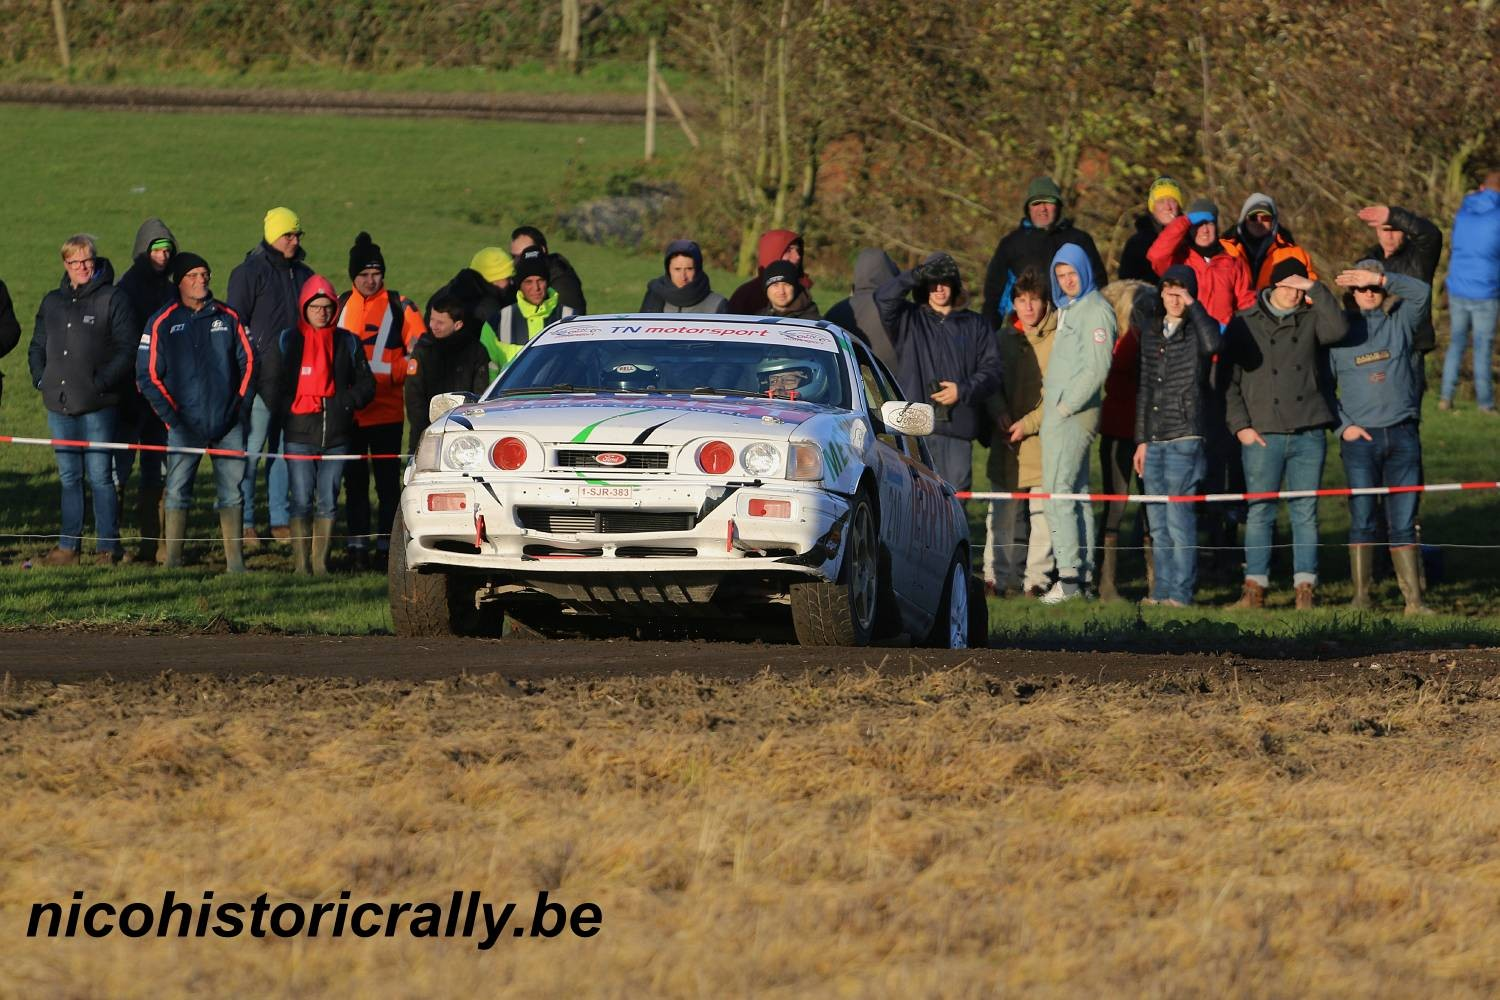 Vooruitblik Nick Toorre in 2018 !